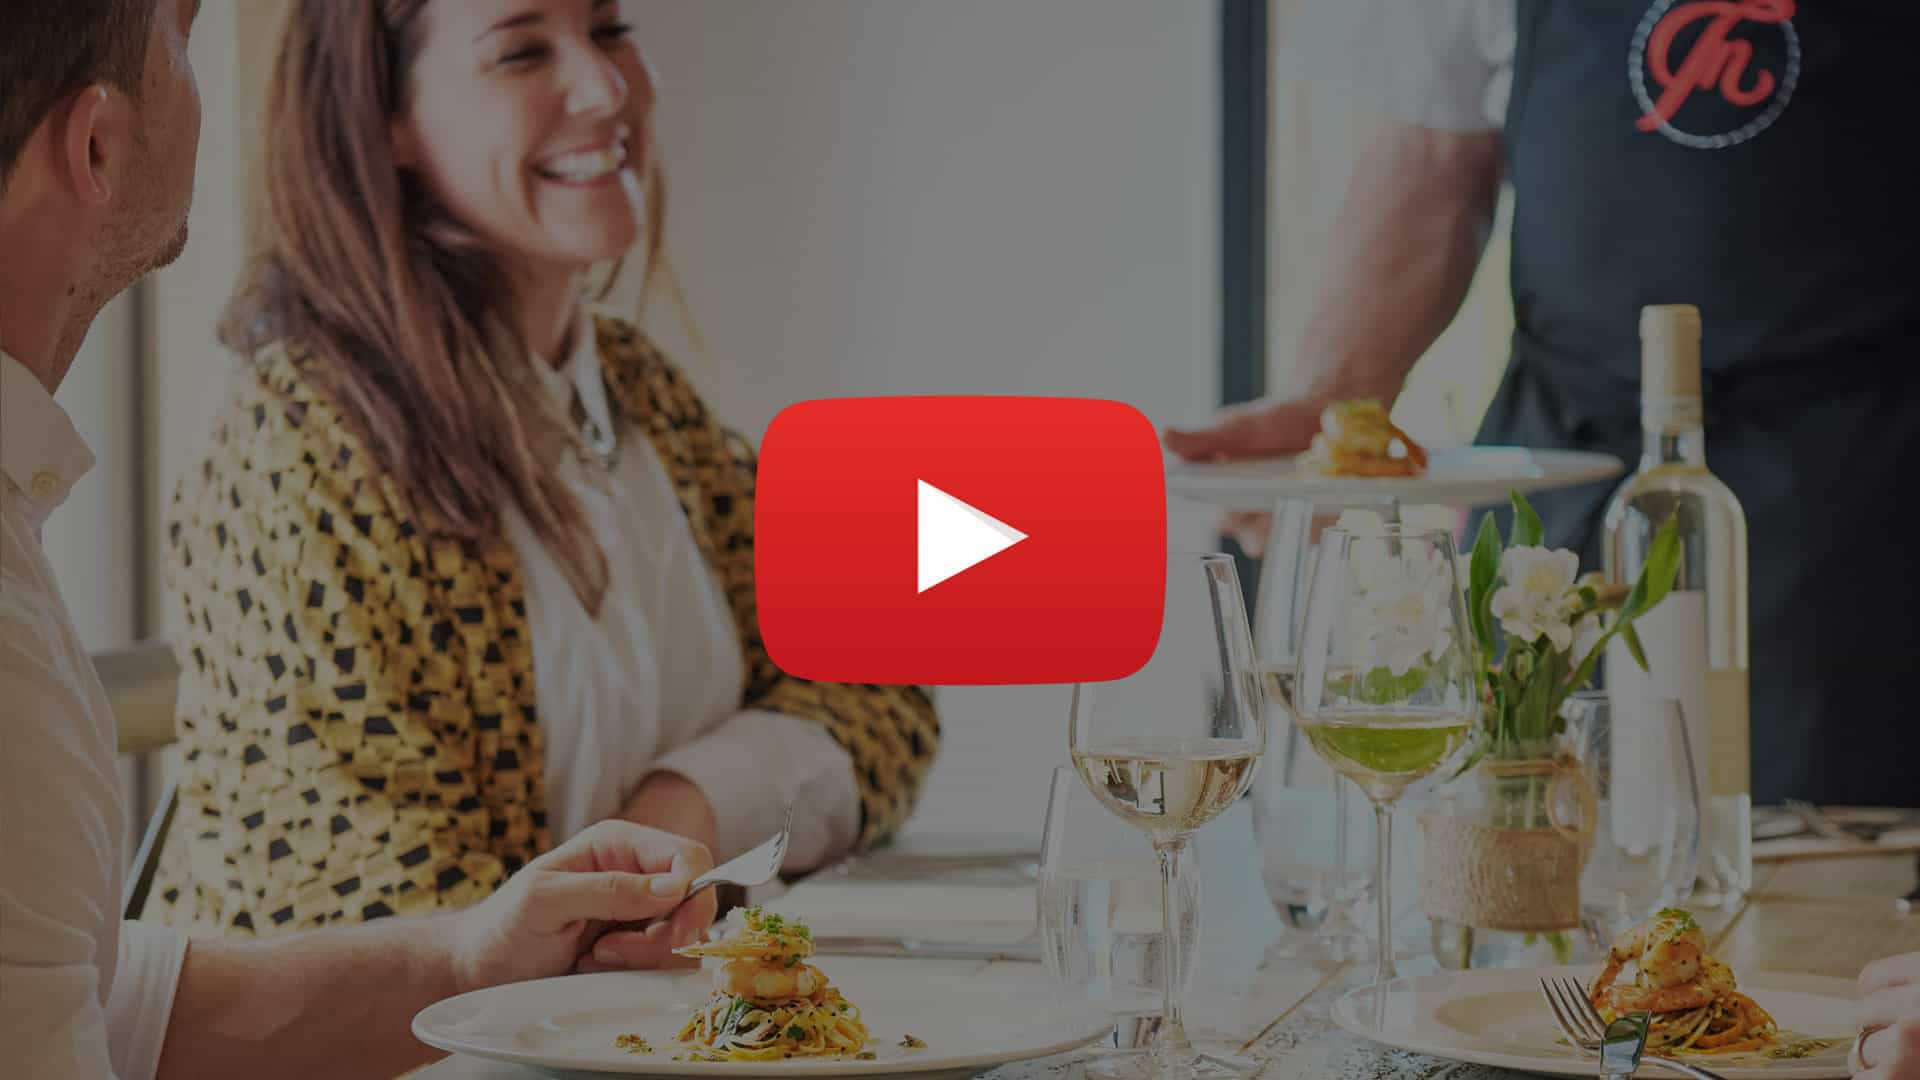 Watch our promo video to learn more about our party catering service